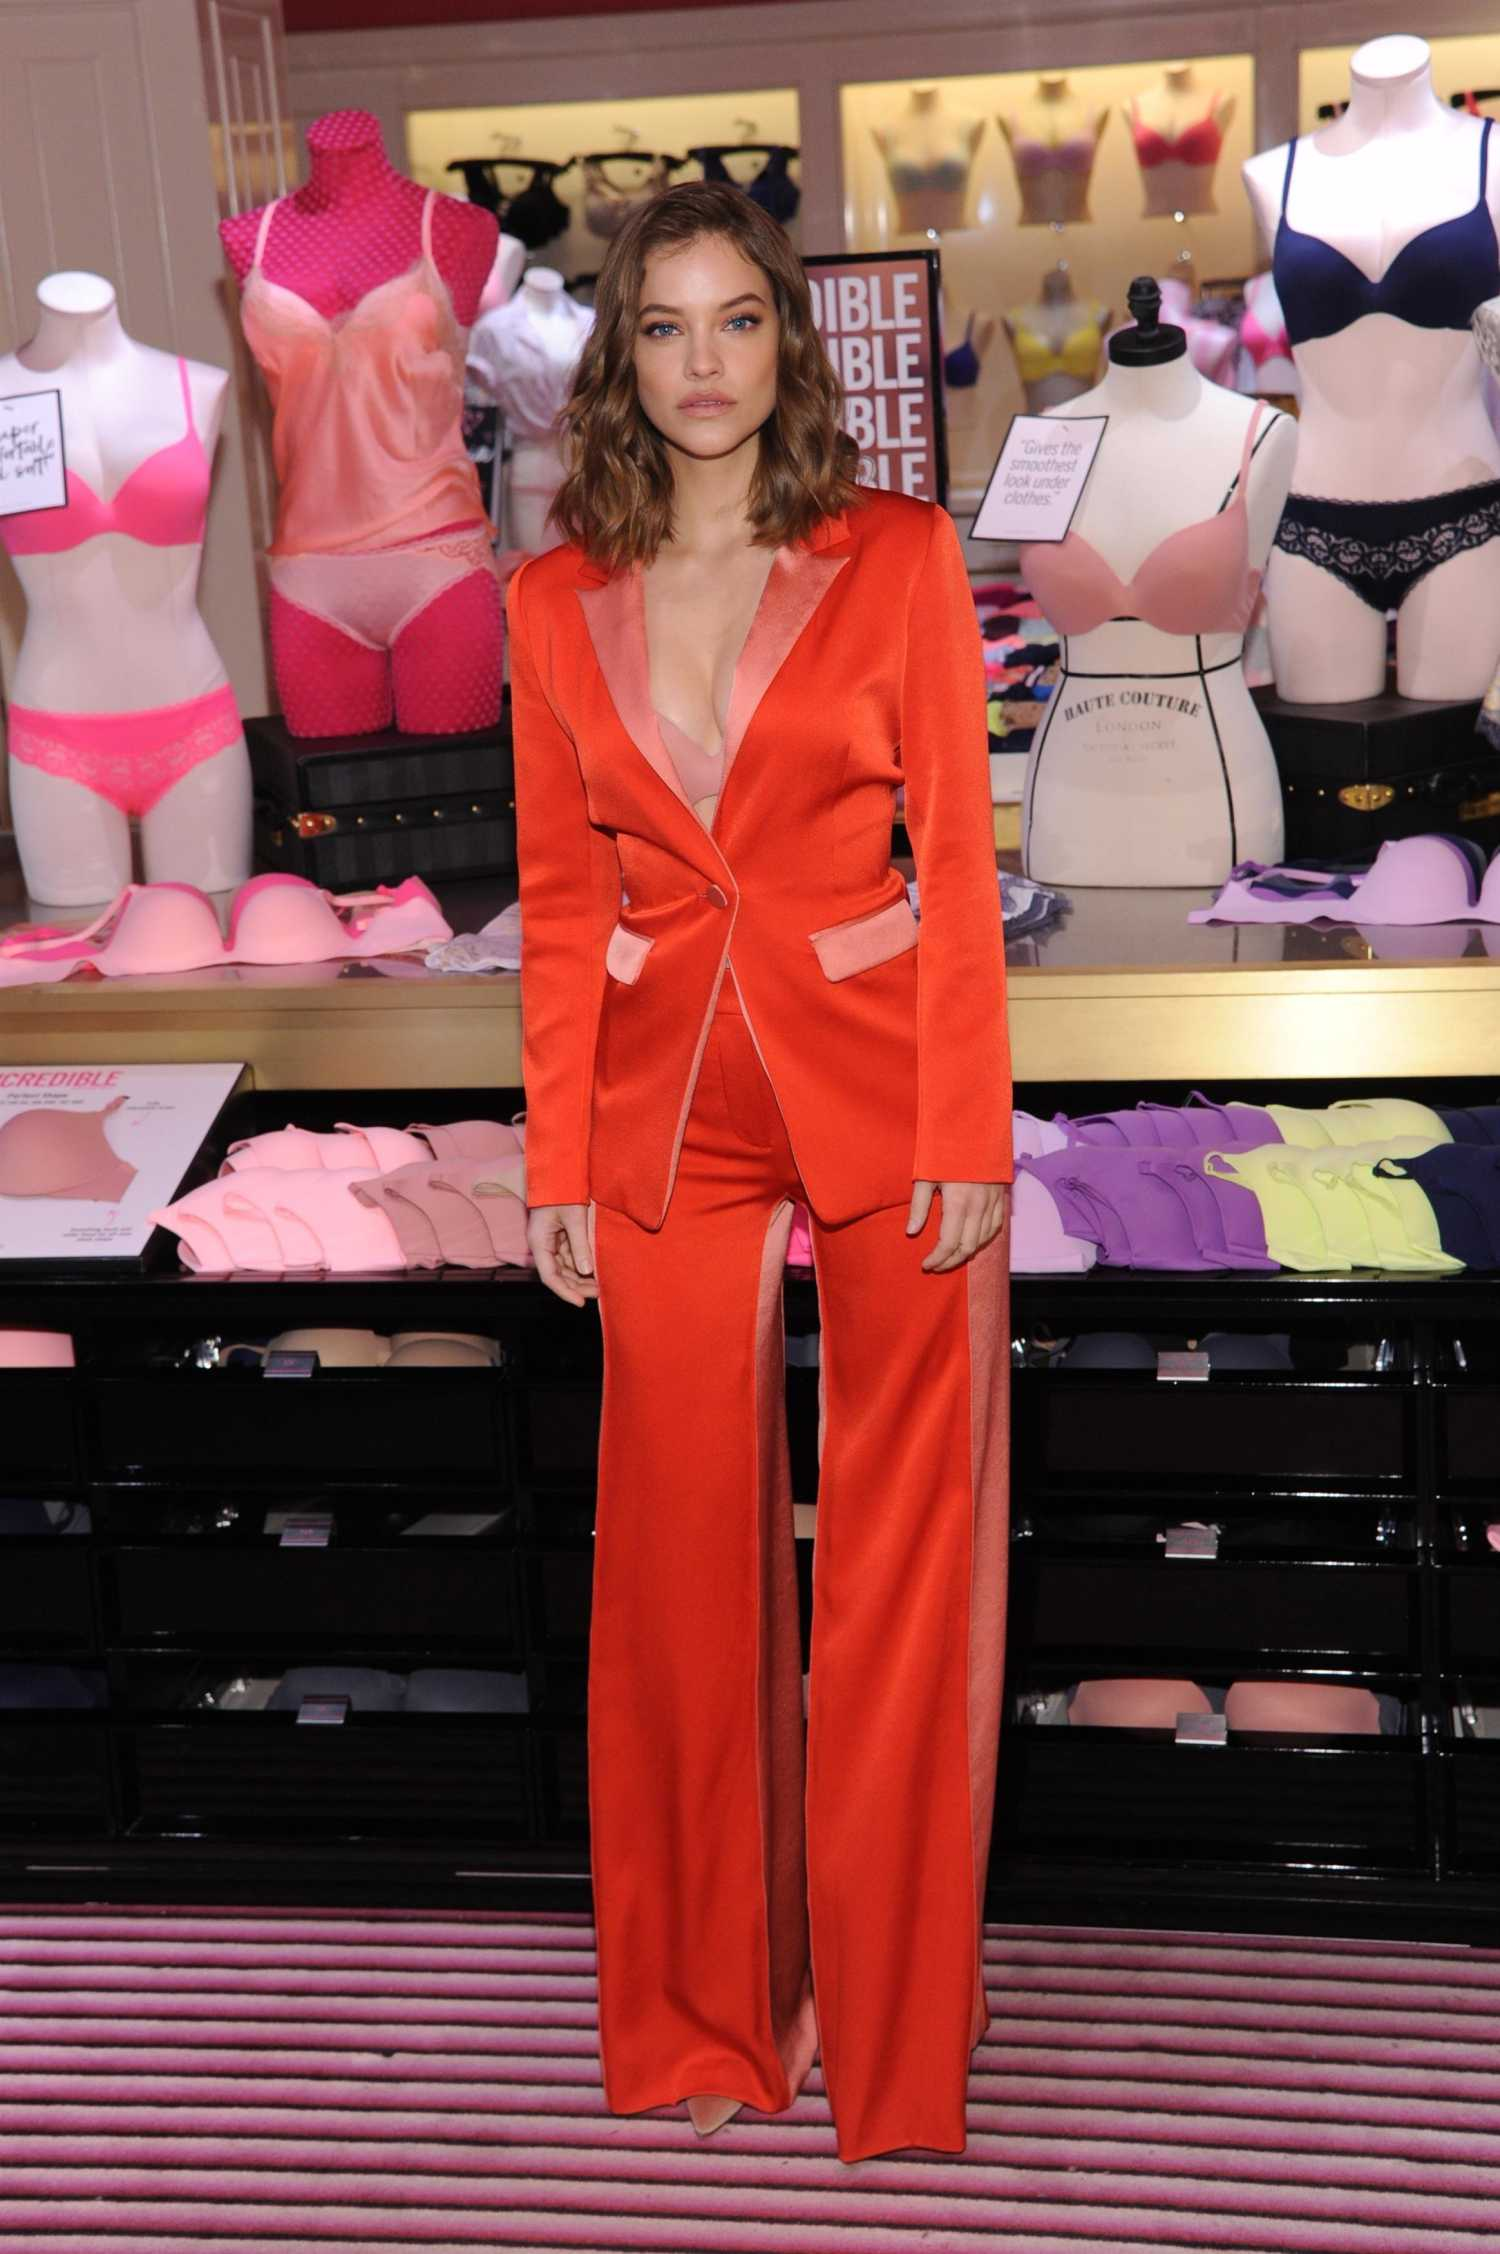 Barbara Palvin in a Red Suit Introduces Victoria's Secrets Newest Collection in New York City 04/16/2019